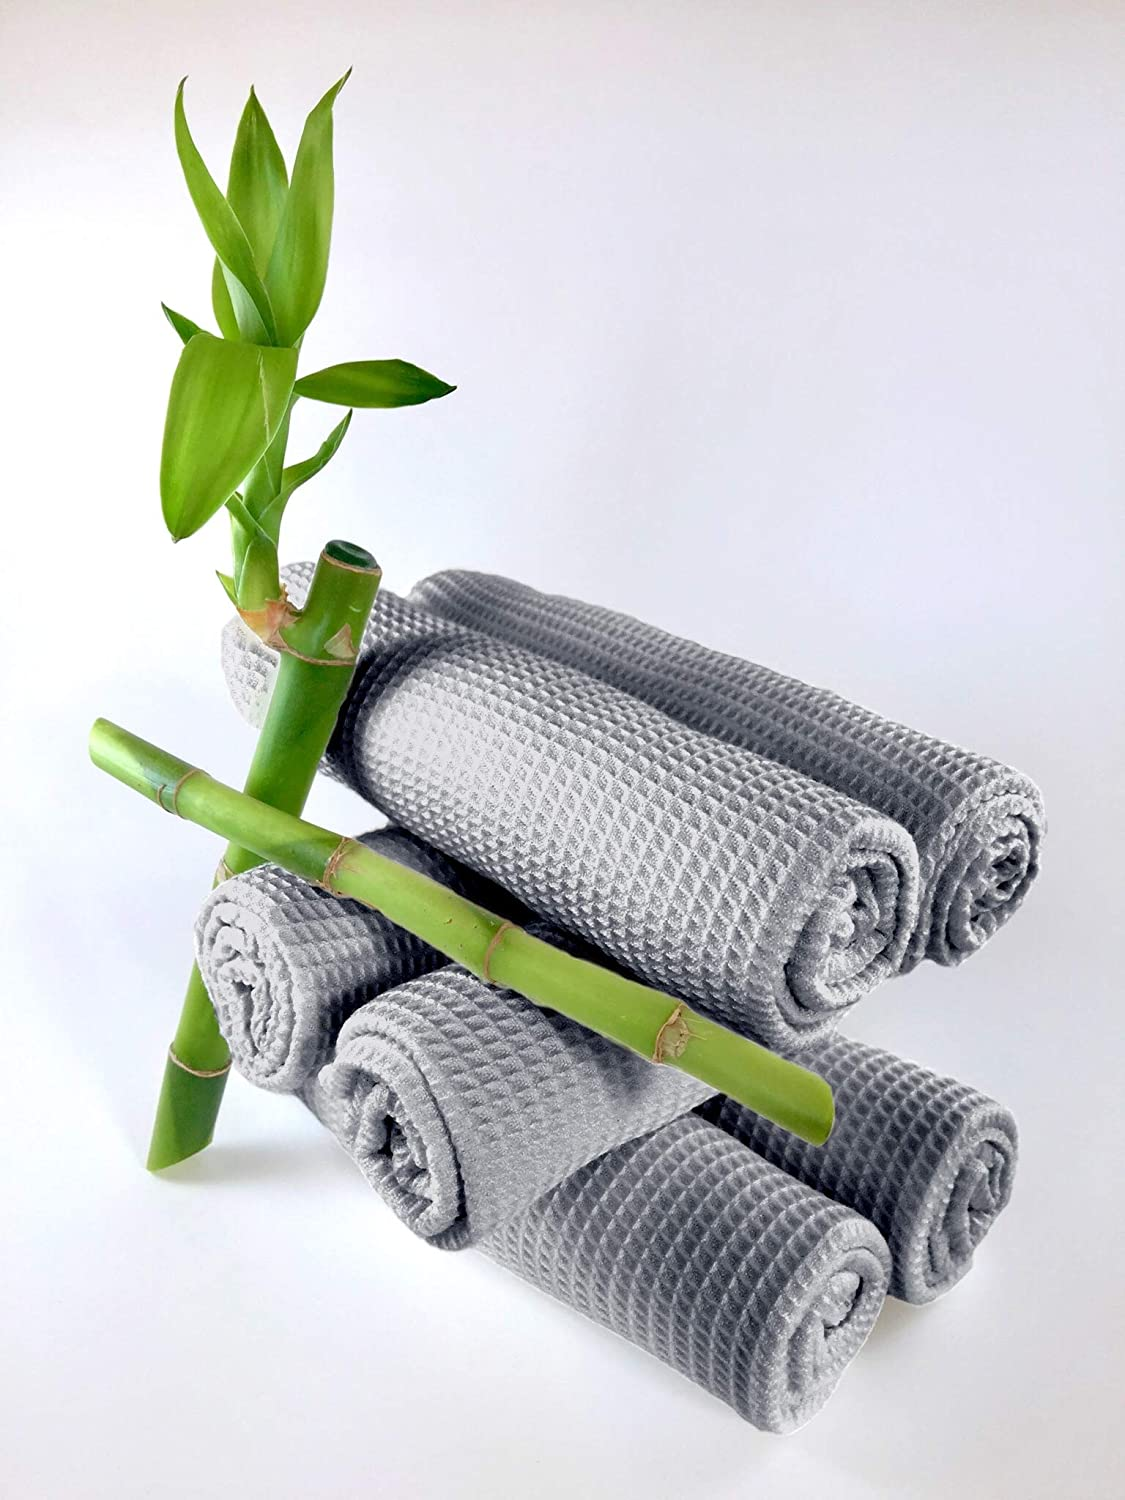 Stone Grey Set of 6 Naturally Antibacterial Odor-Resistant by Bambizzle Textiles Bamboo Dishcloths